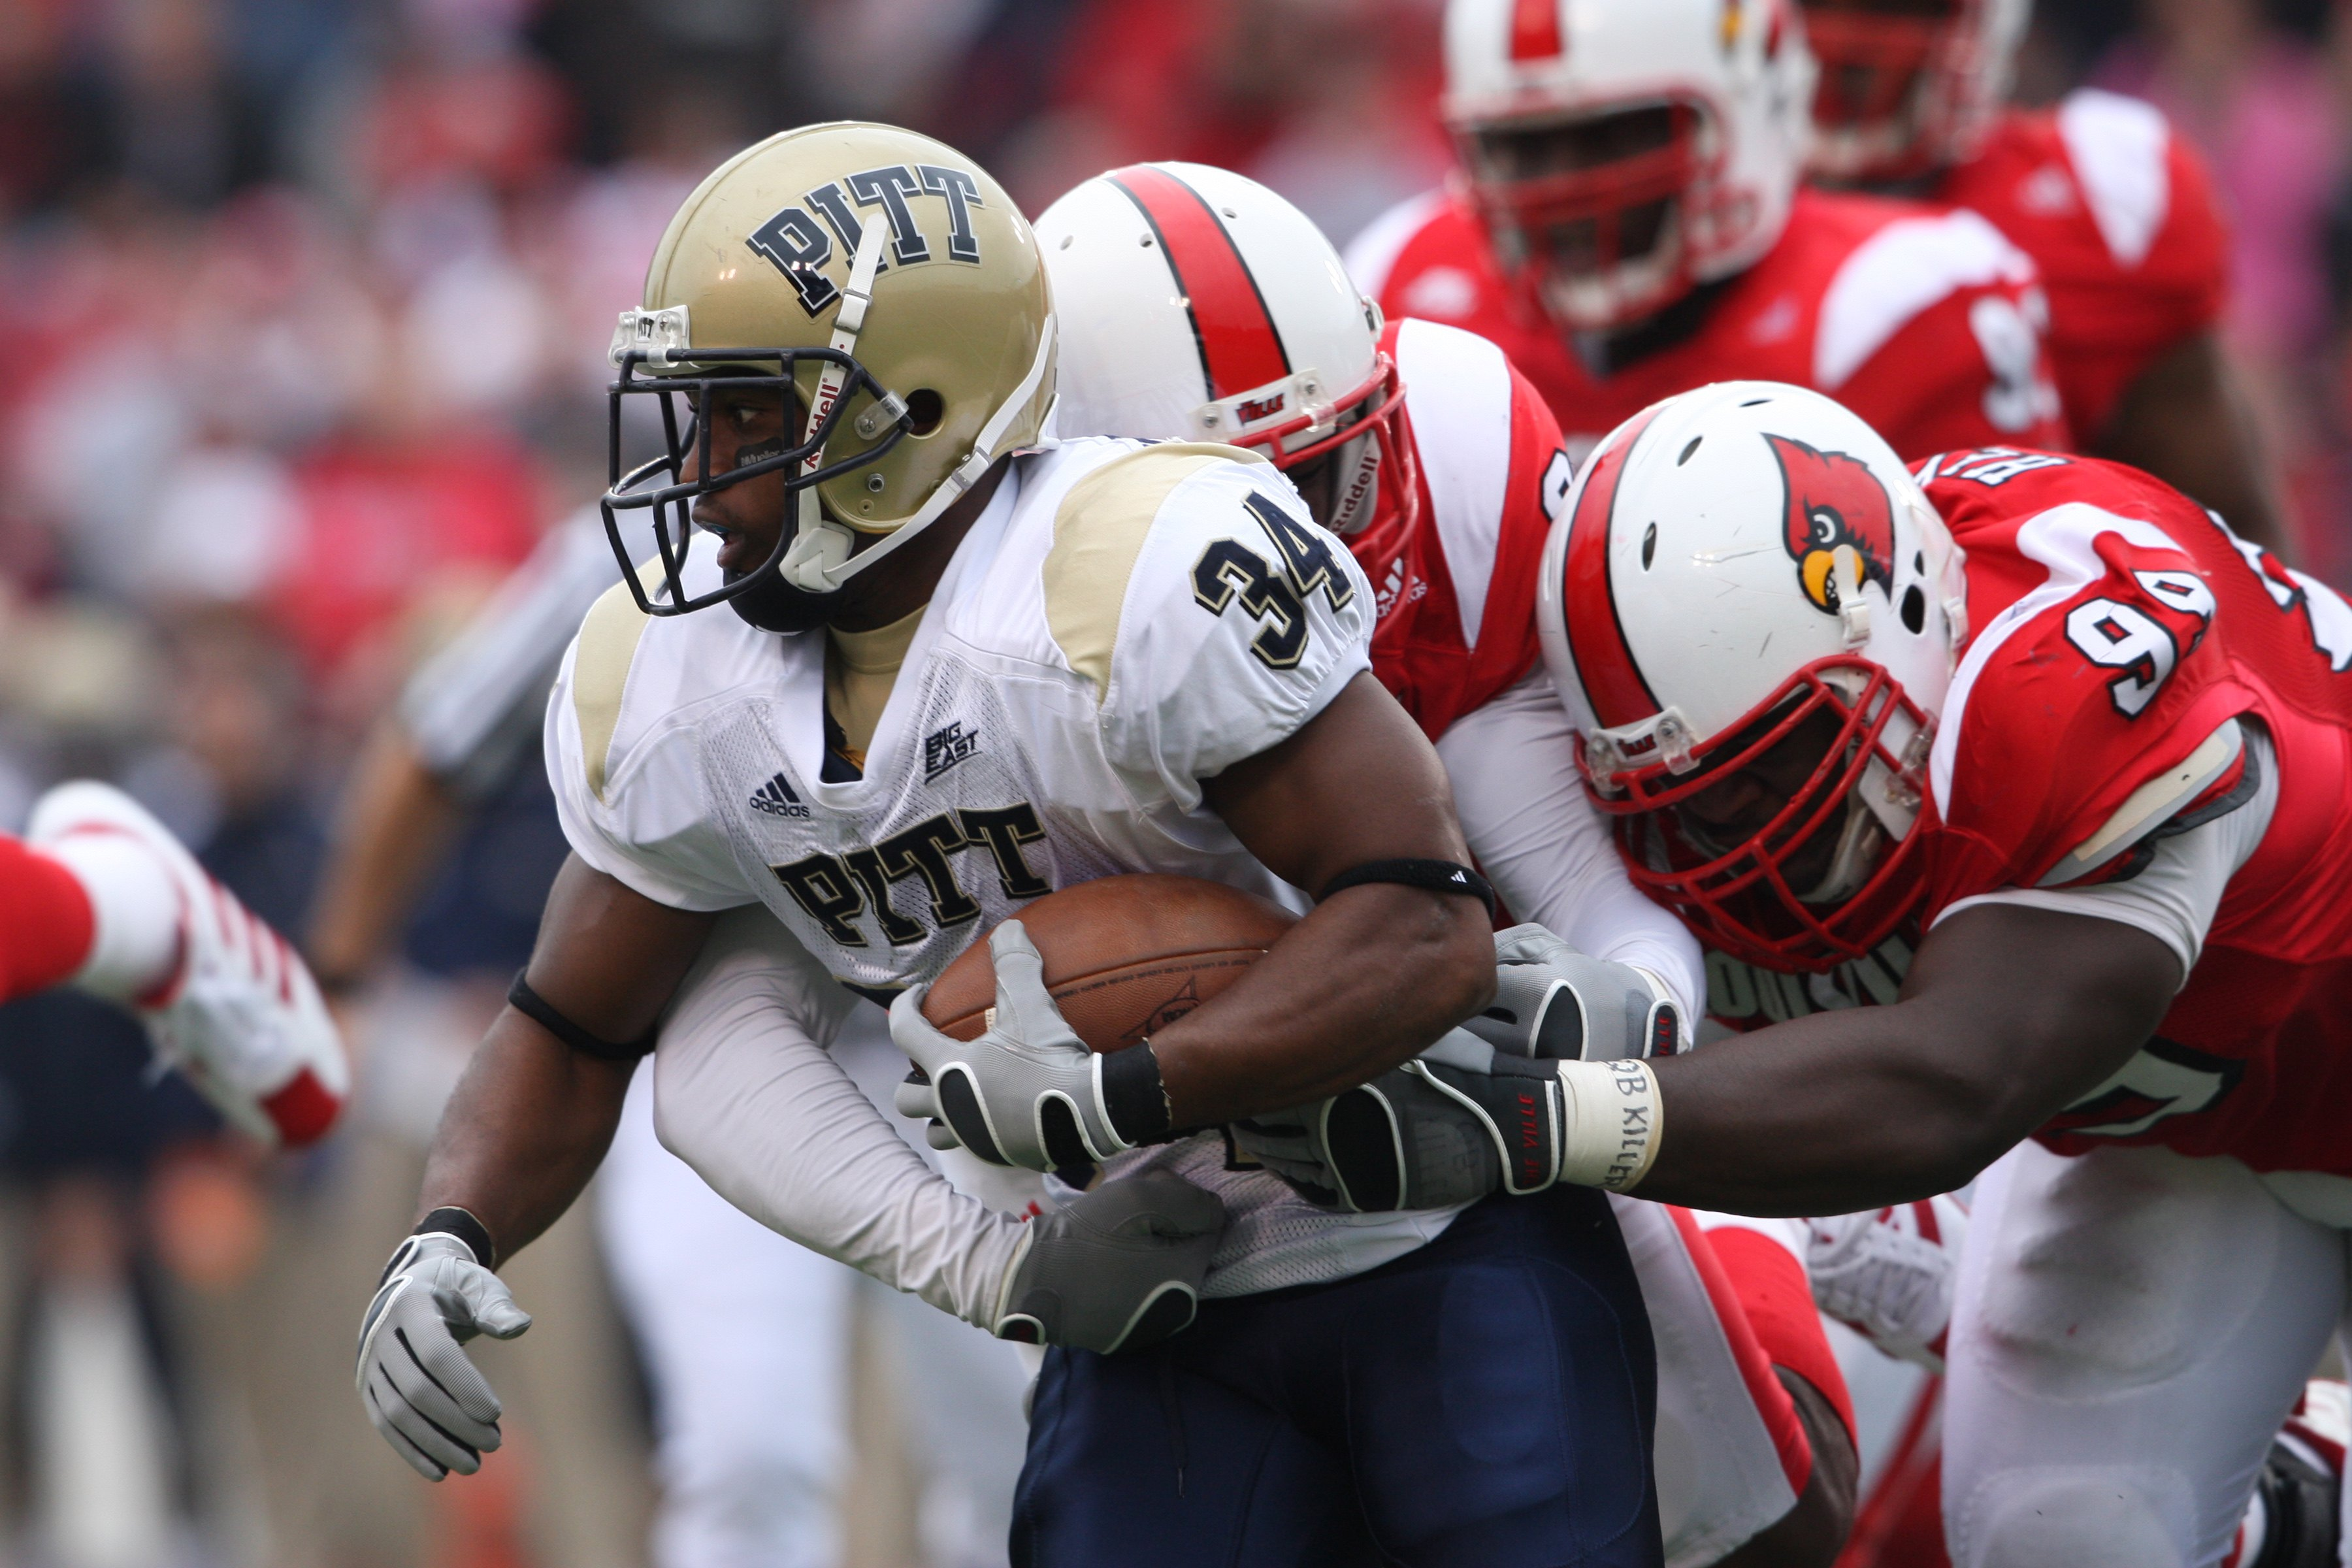 LOUISVILLE - OCTOBER 27:  LaRod Stephens-Howling #34 of the Pittsburgh Panthers is tackled during the game against the Louisville Cardinals at Papa John?s Cardinal Stadium on October 27, 2007 in Louisville, Kentucky. (Photo by Andy Lyons/Getty Images)